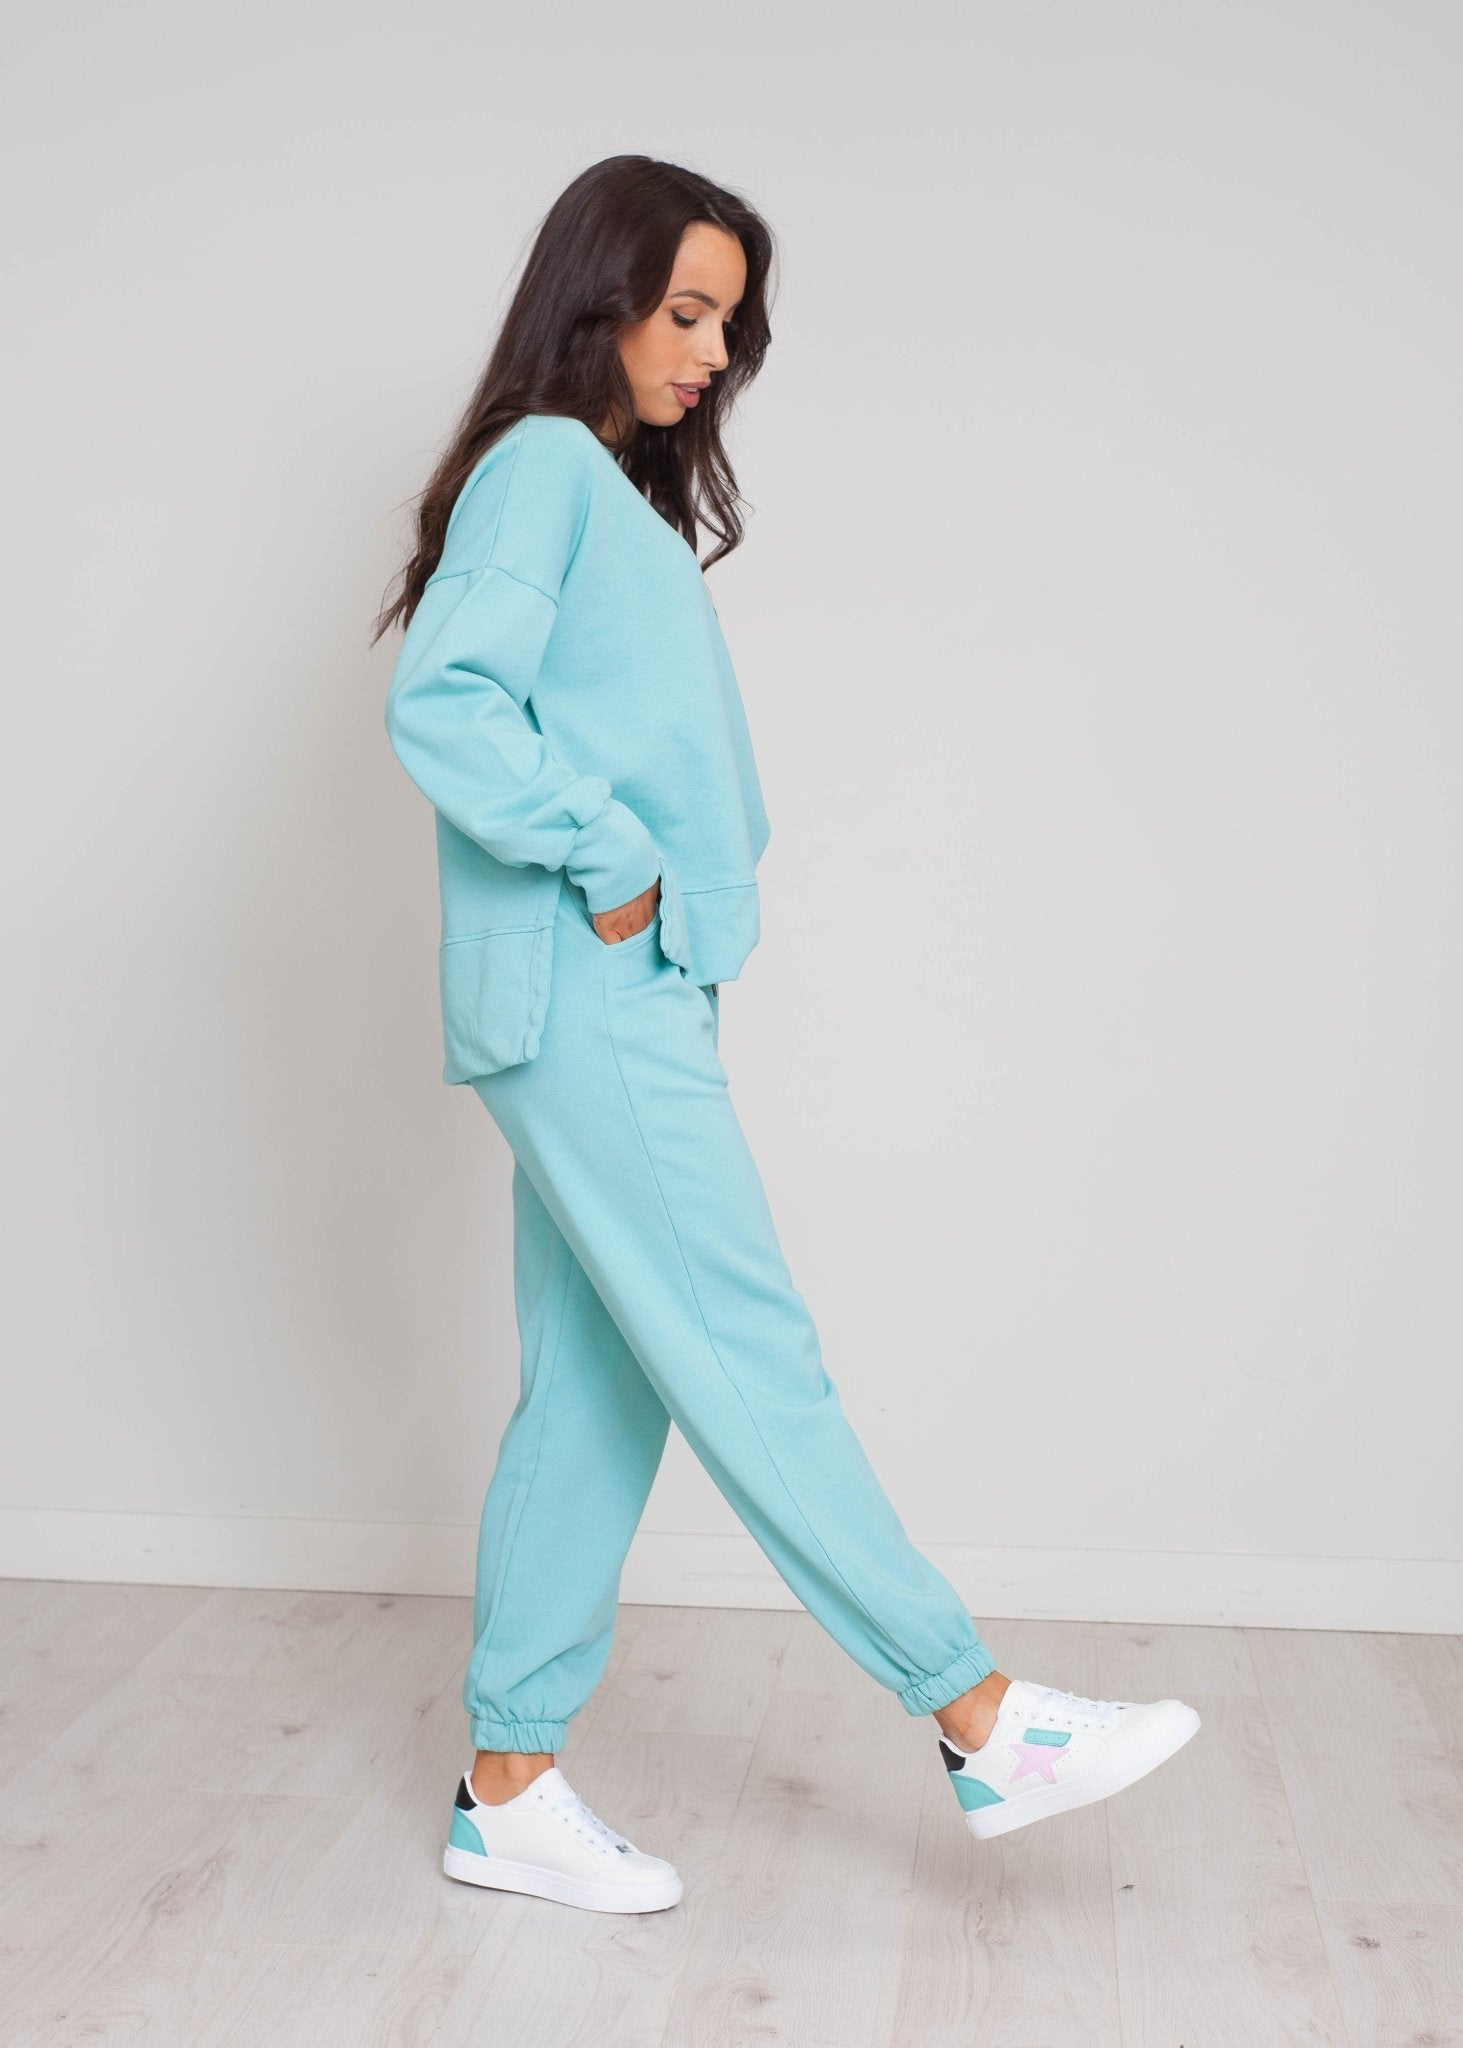 Laura Joggers In Duck Egg - The Walk in Wardrobe